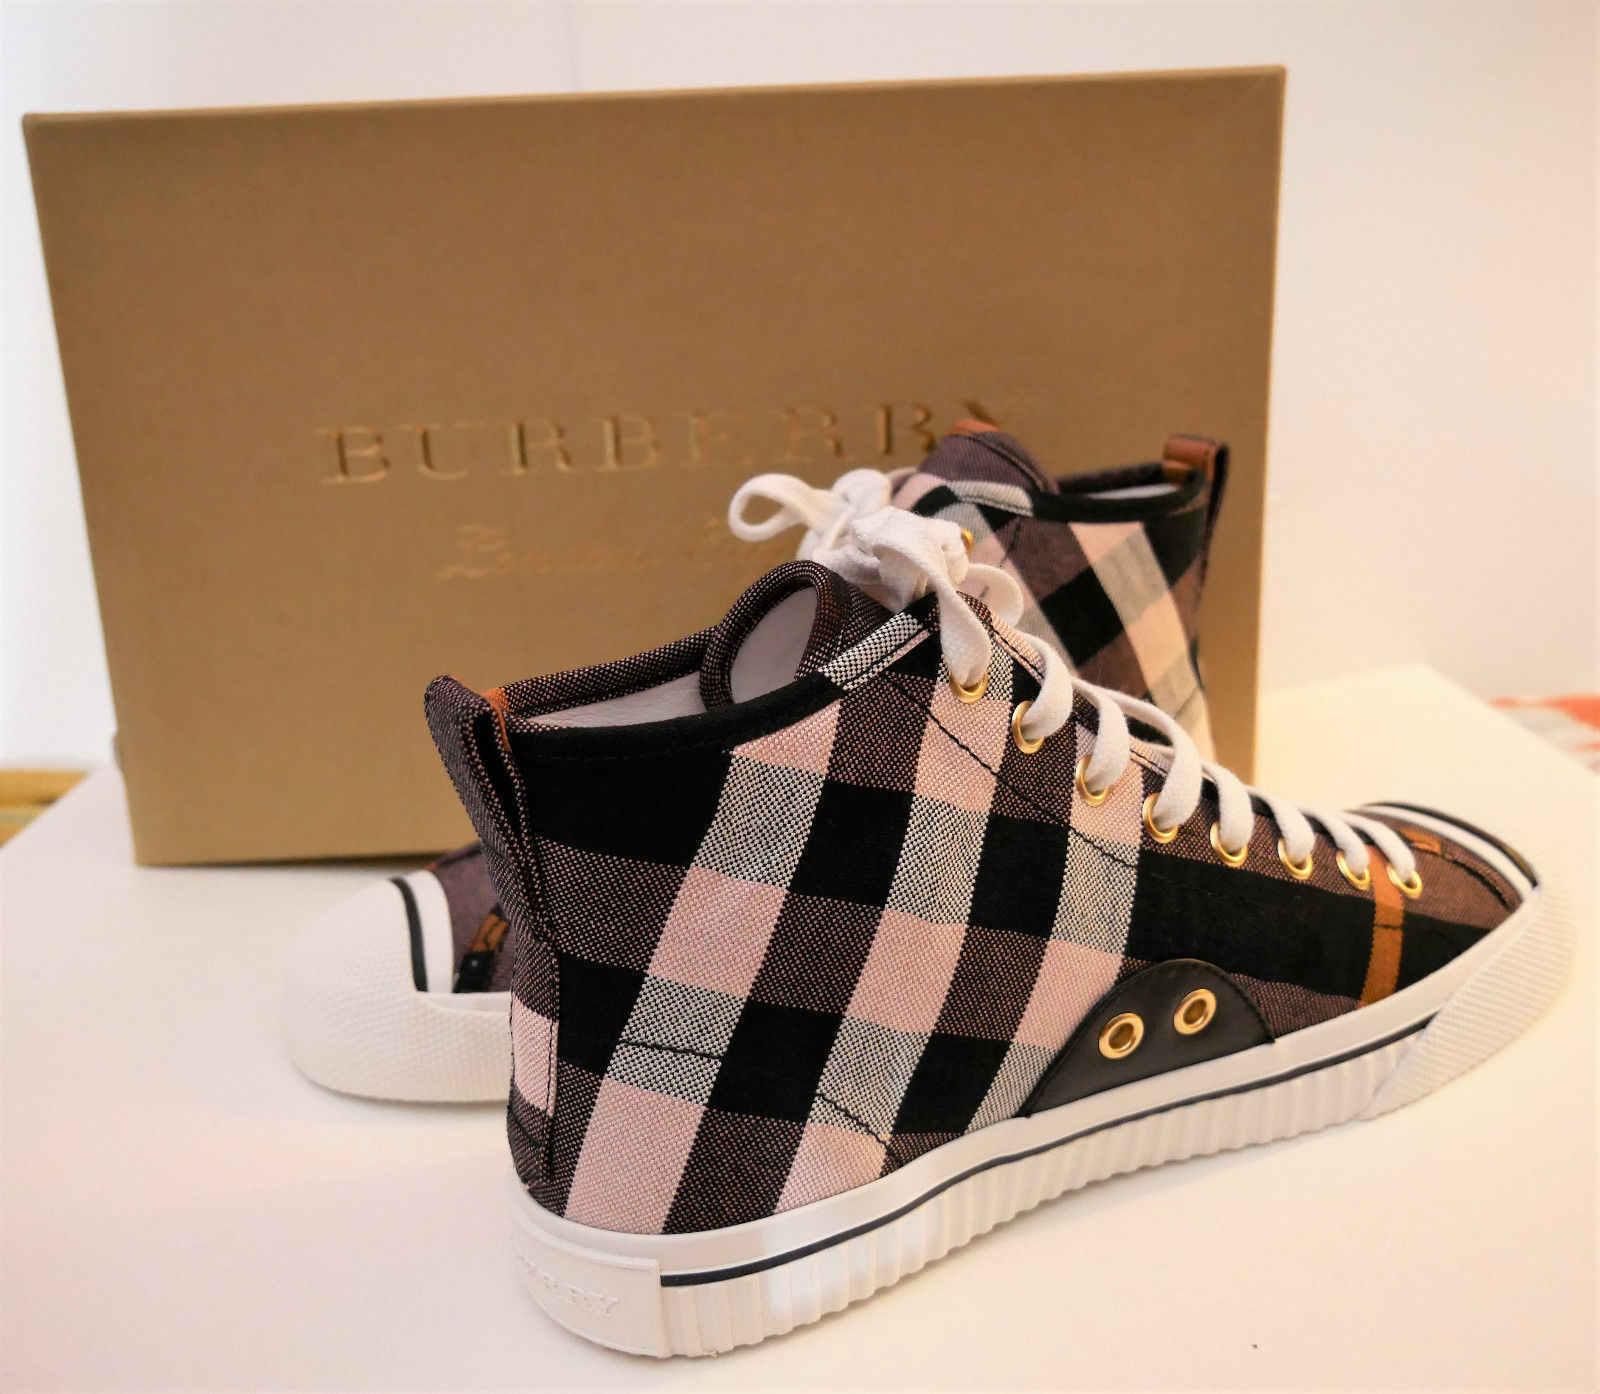 61b22ed274f 57. 57. Previous. Burberry New Women s Check Linen Cotton HighTop Sneaker  Trainers Shoes Size 9